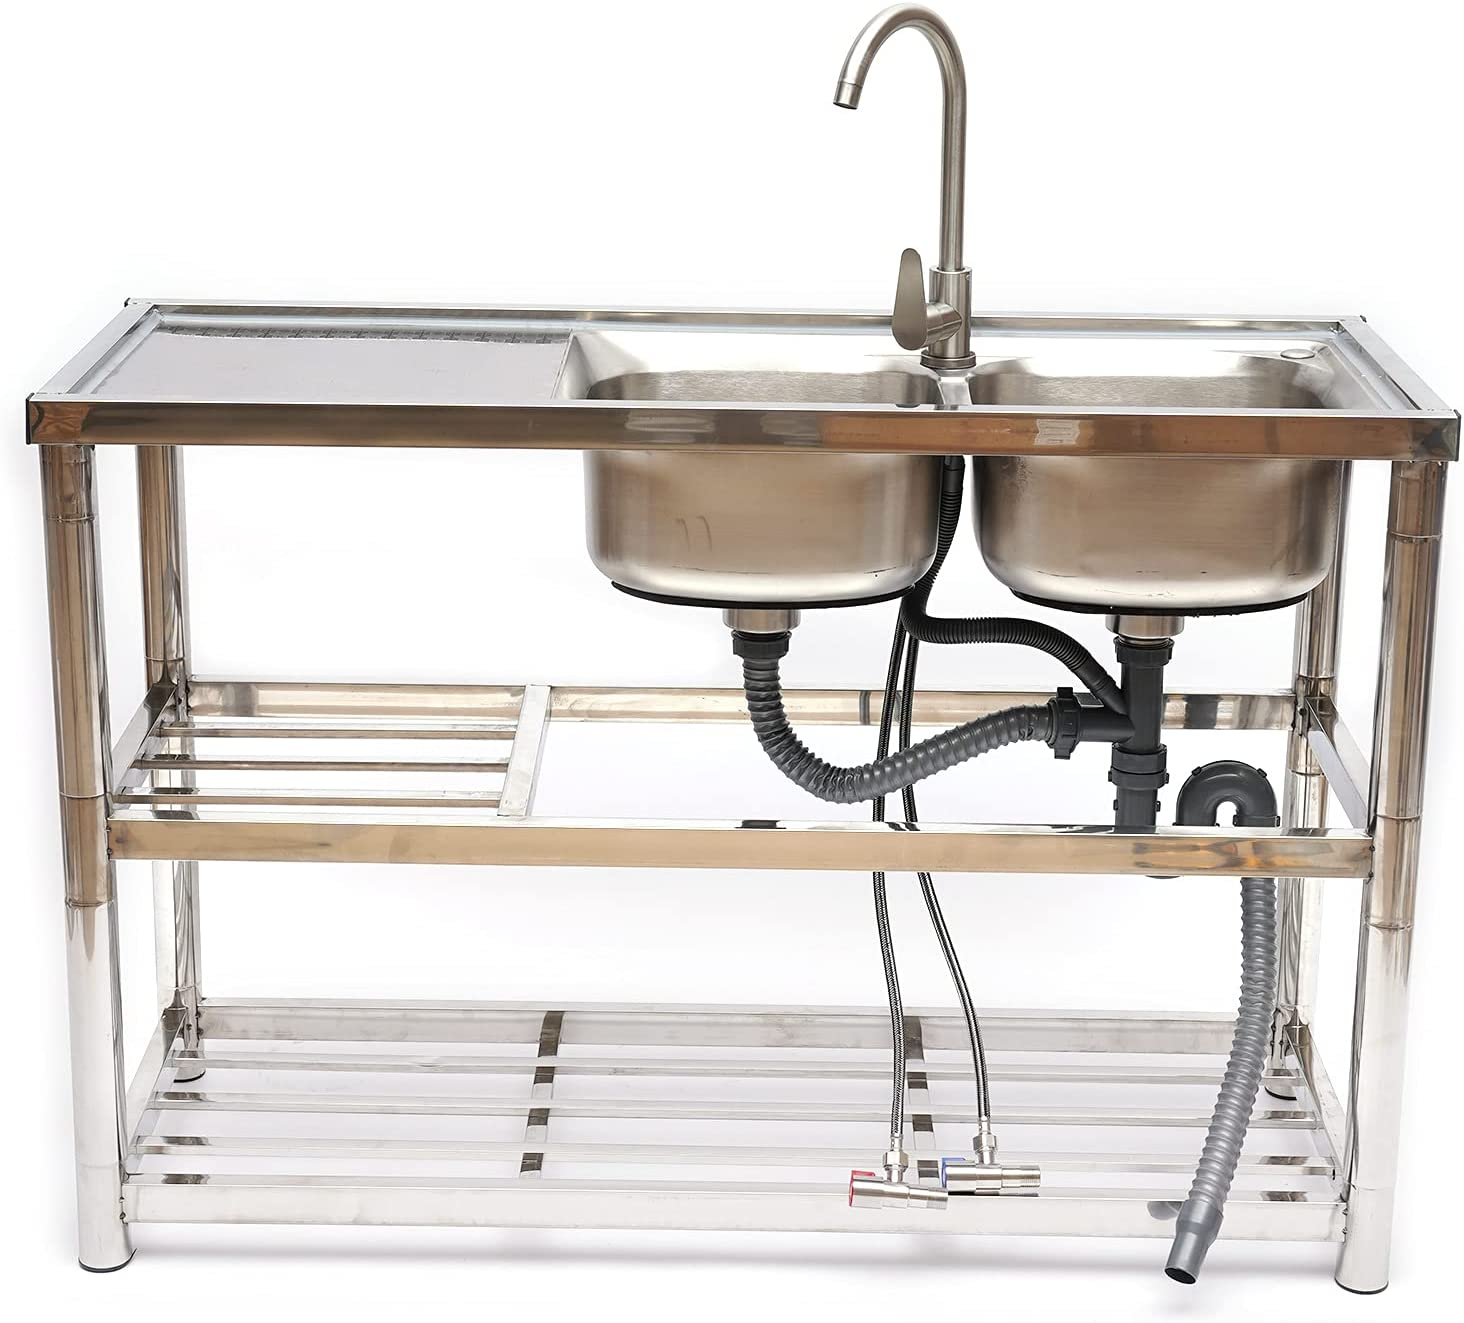 2 Compartment Stainless Steel Utility Sink P Boston Mall Kitchen specialty shop Commercial